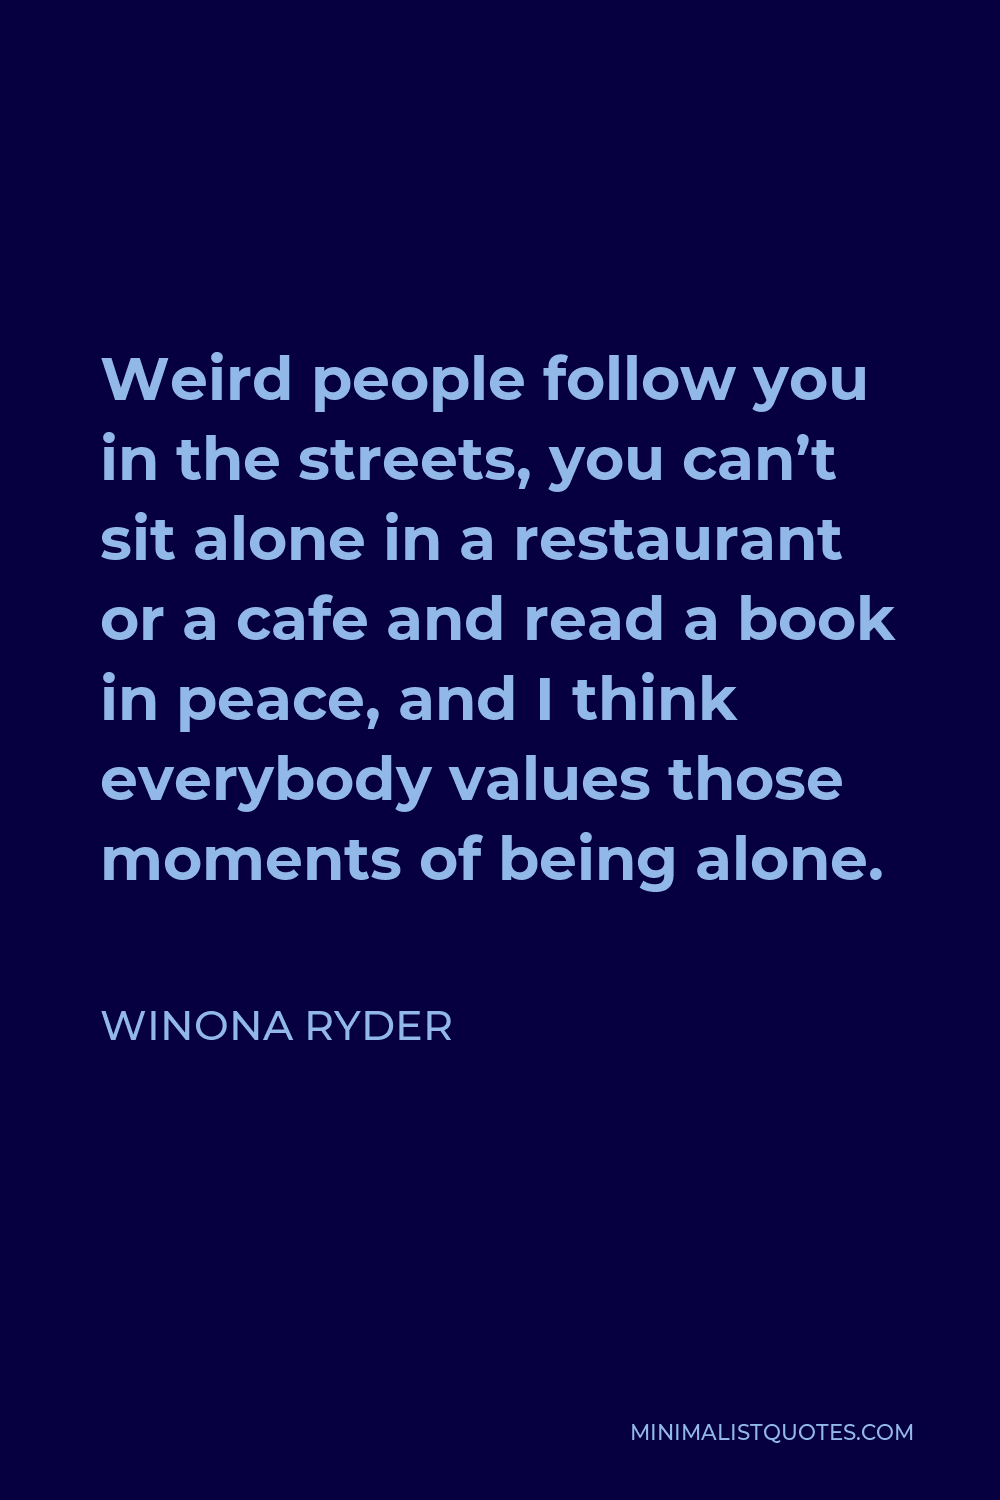 Winona Ryder Quote - Weird people follow you in the streets, you can't sit alone in a restaurant or a cafe and read a book in peace, and I think everybody values those moments of being alone.